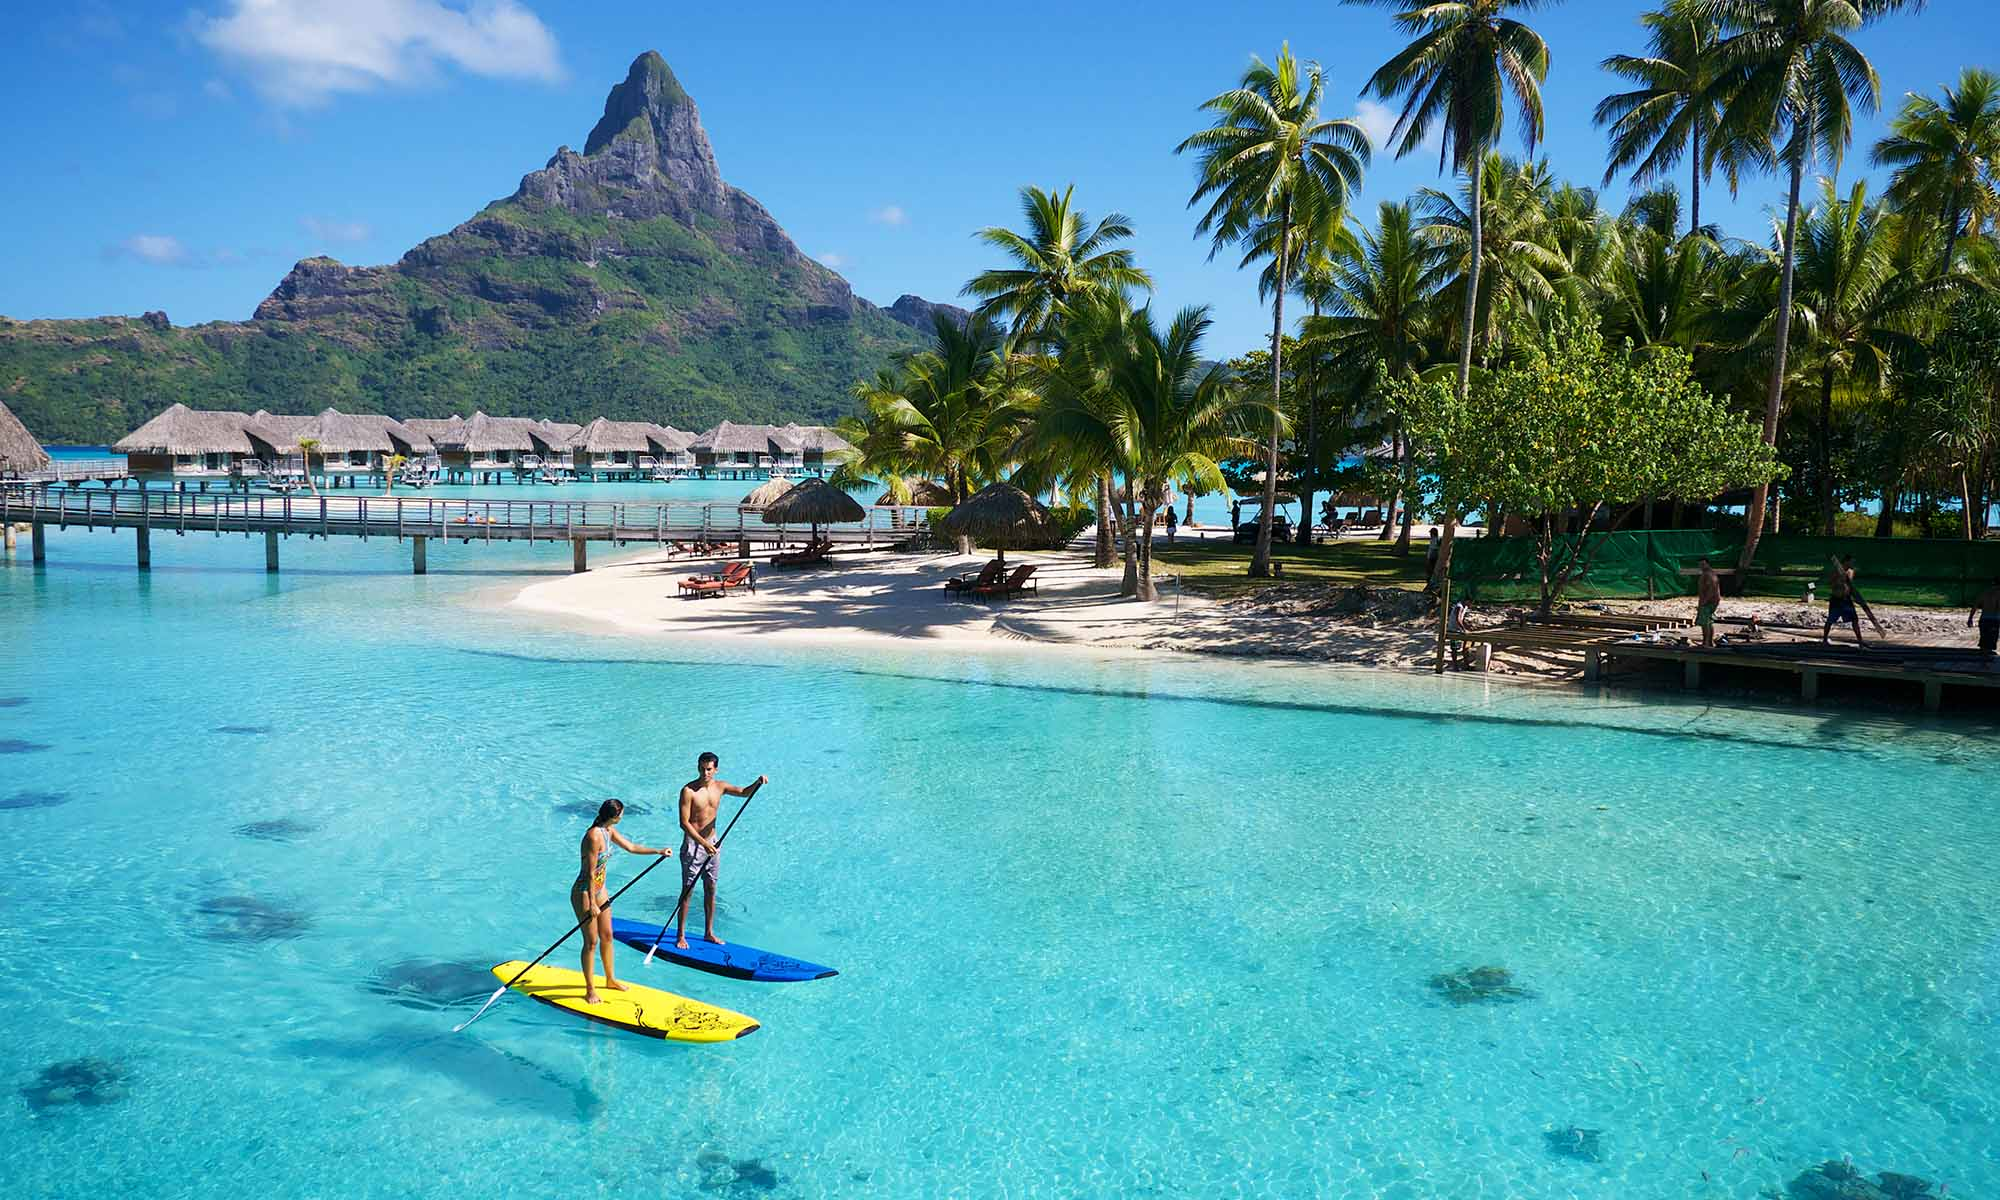 Paddleboarding at the InterContinental Bora Bora Resort & Thalasso Spa